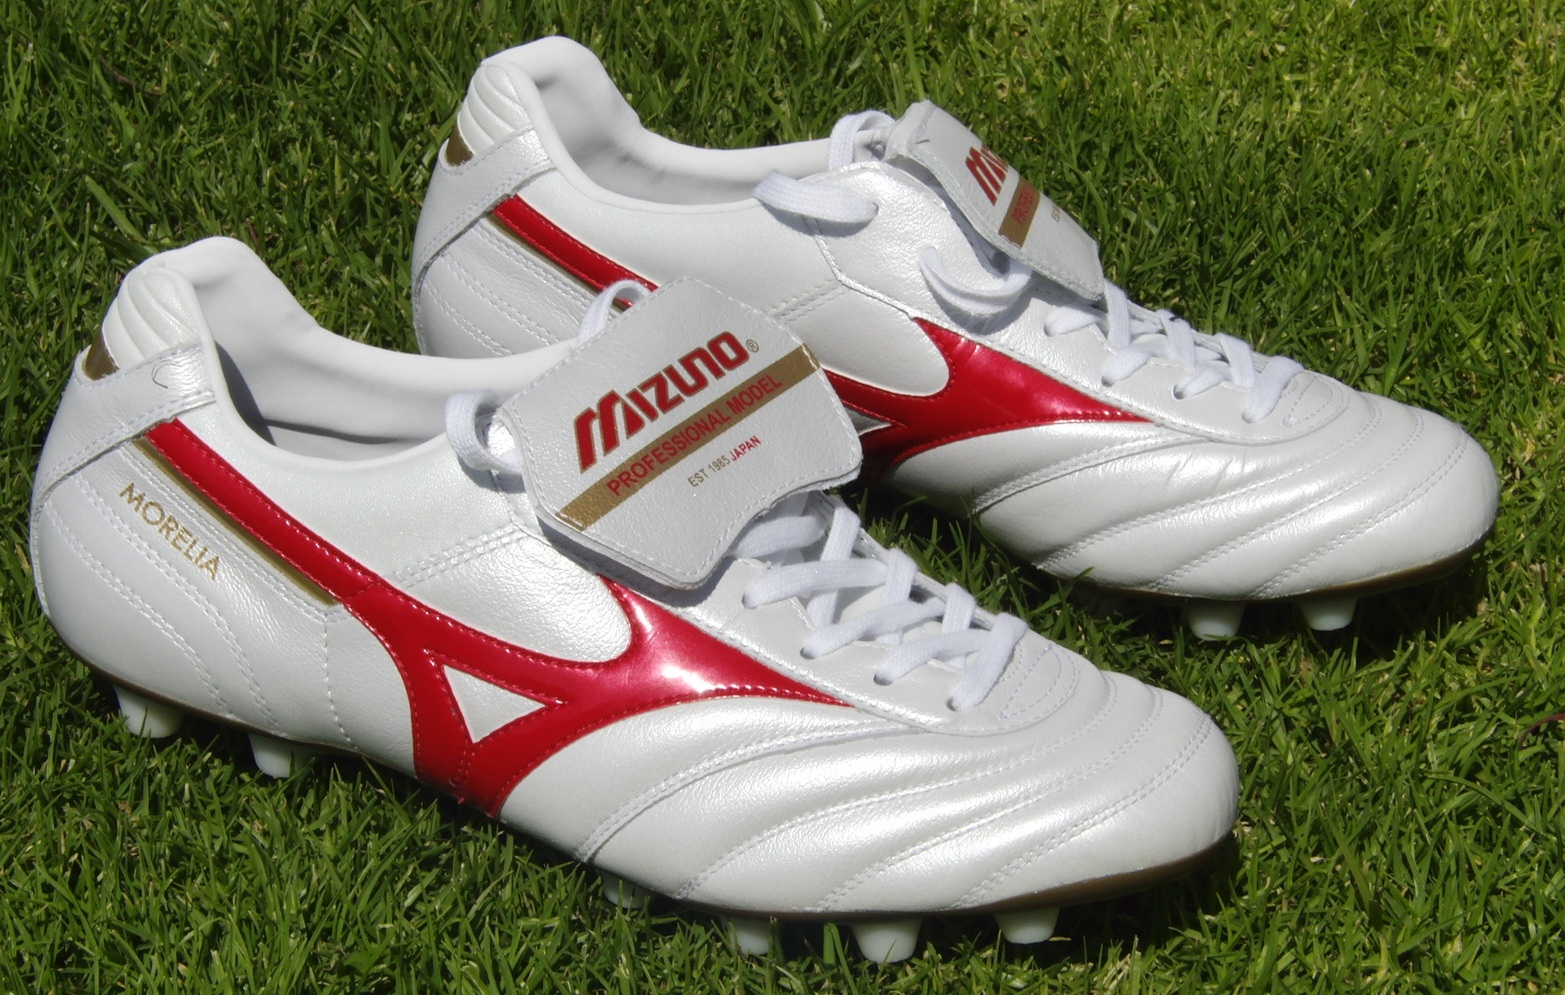 finest selection f7463 1ba23 Mizuno Morelia Boot Review   Soccer Cleats 101